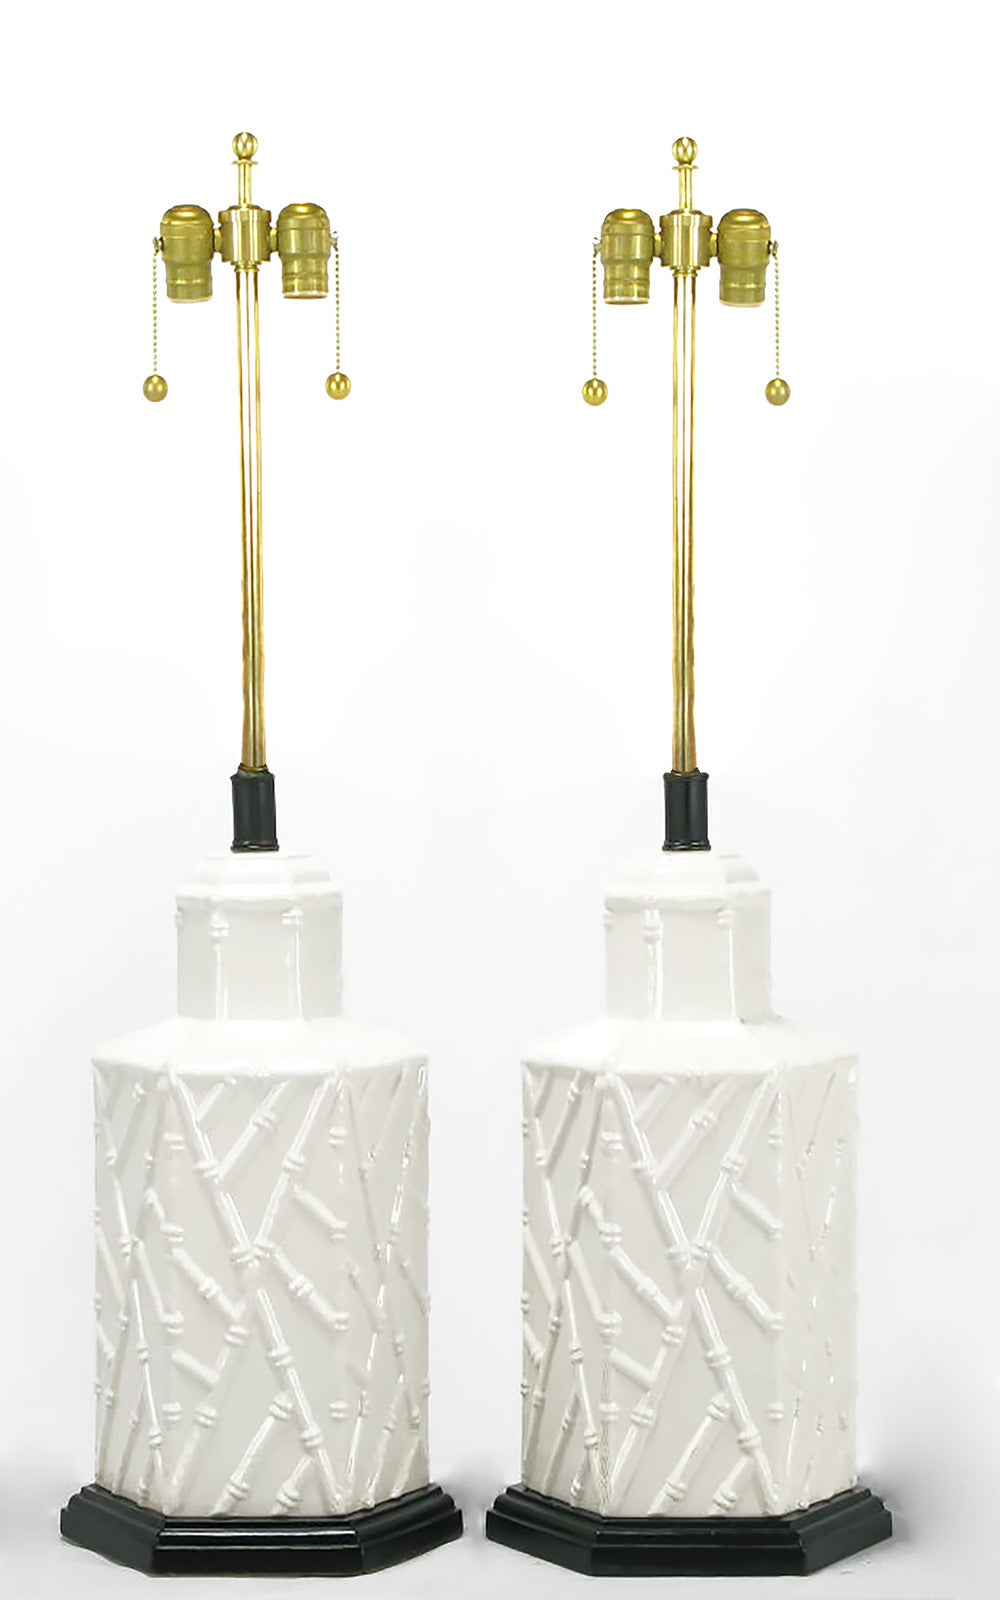 Pair of hexagonal shaped white ceramic bodied table lamps, with a patterned bamboo relief. Black lacquered and stepped hexagonal wood base and black lacquered metal and brass stems with double socket clusters. Sold sans shades.